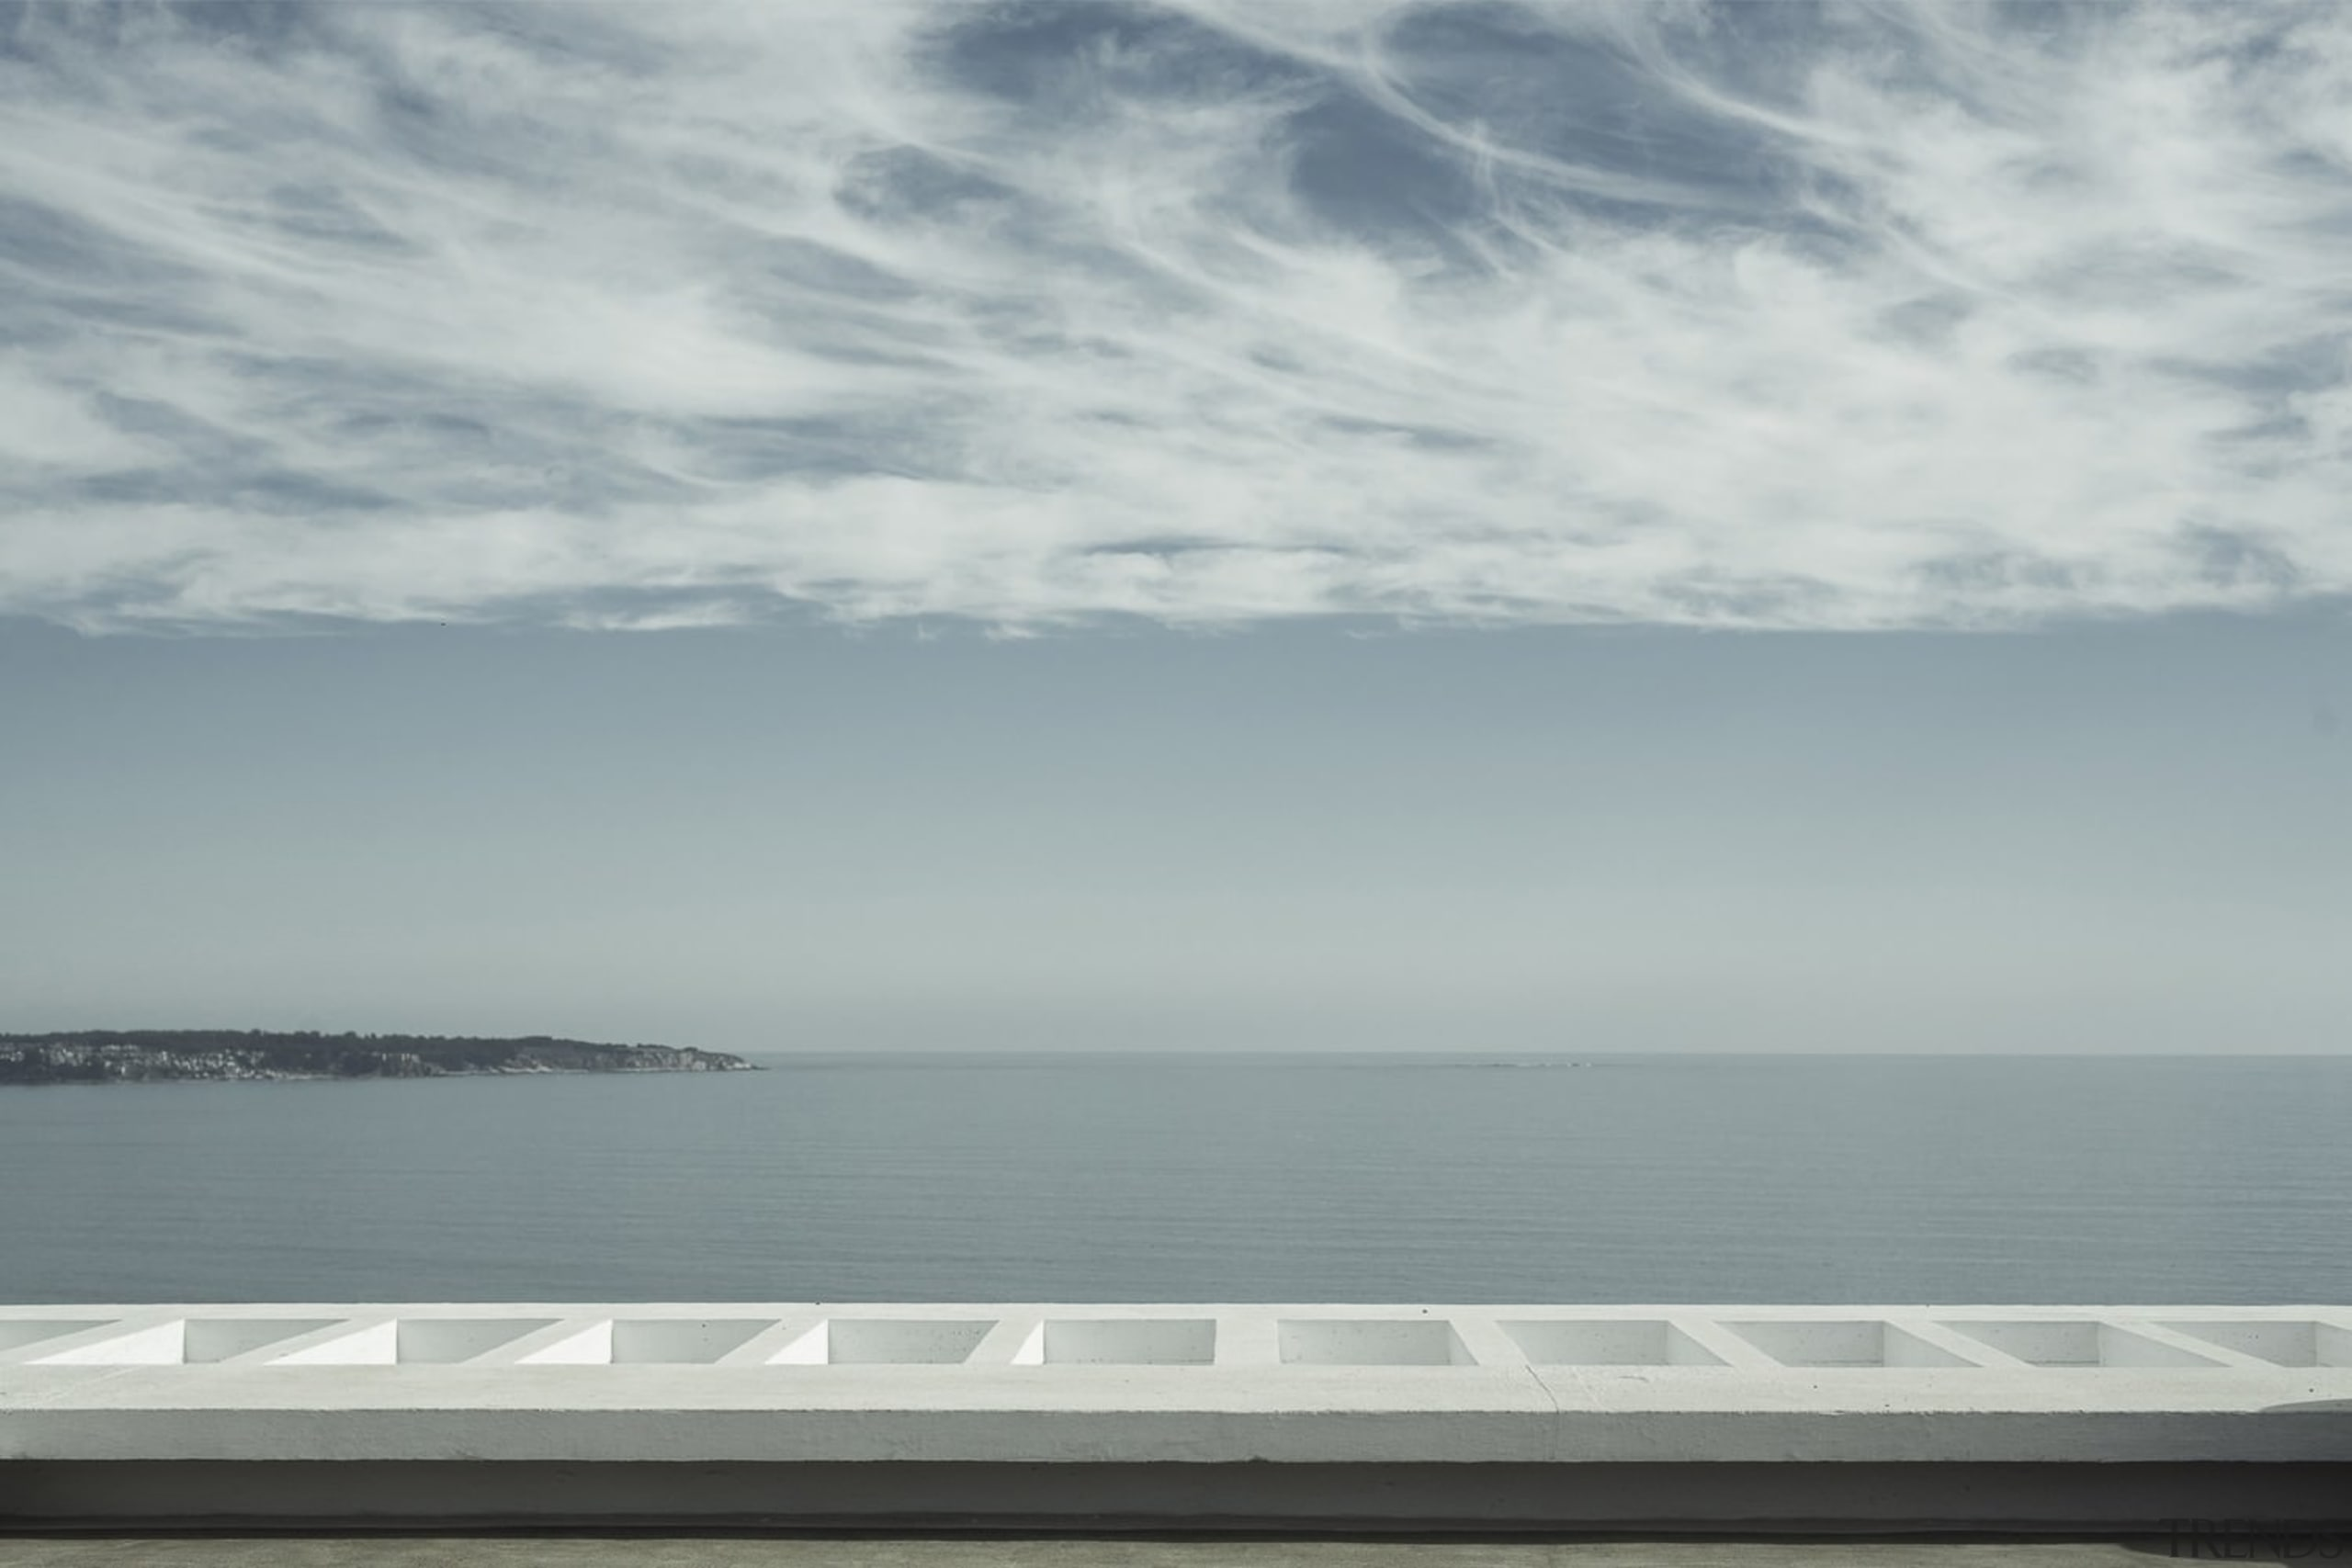 Unobstructed views of the Pacific ocean - Unobstructed calm, cloud, coastal and oceanic landforms, daytime, horizon, ocean, sea, shore, sky, water, gray